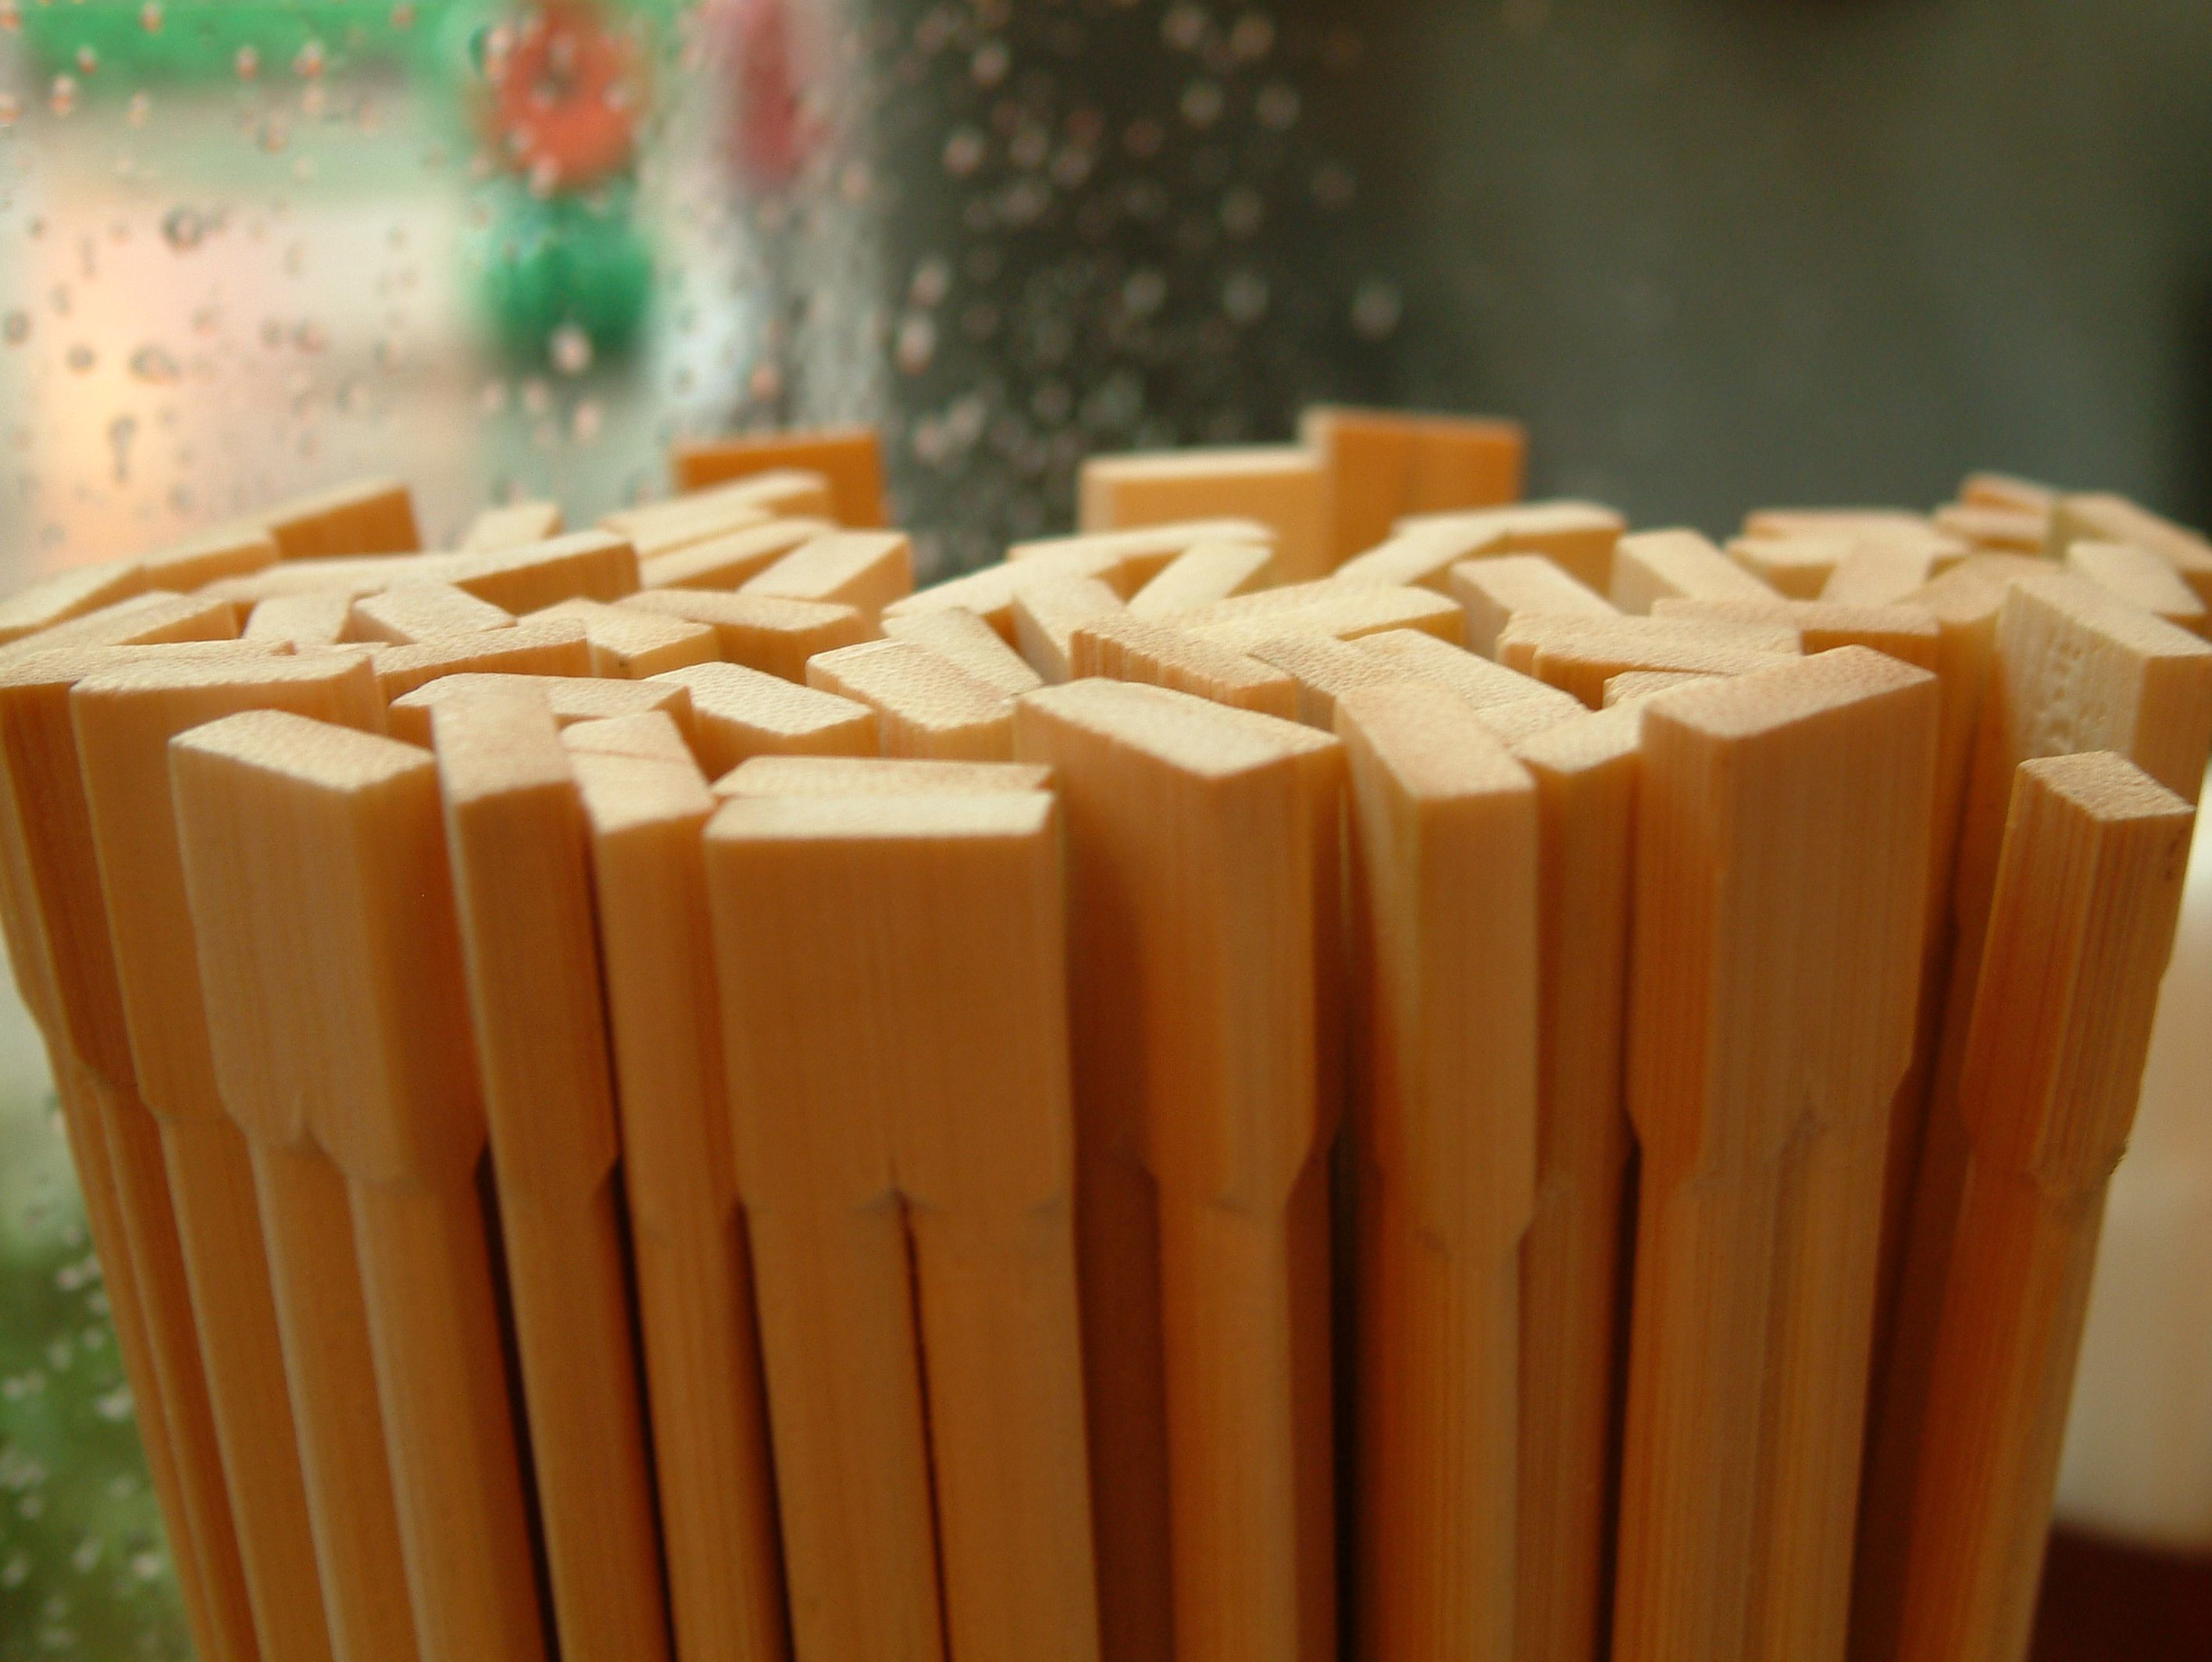 Disposable Chopsticks: Bad for Health and Environment